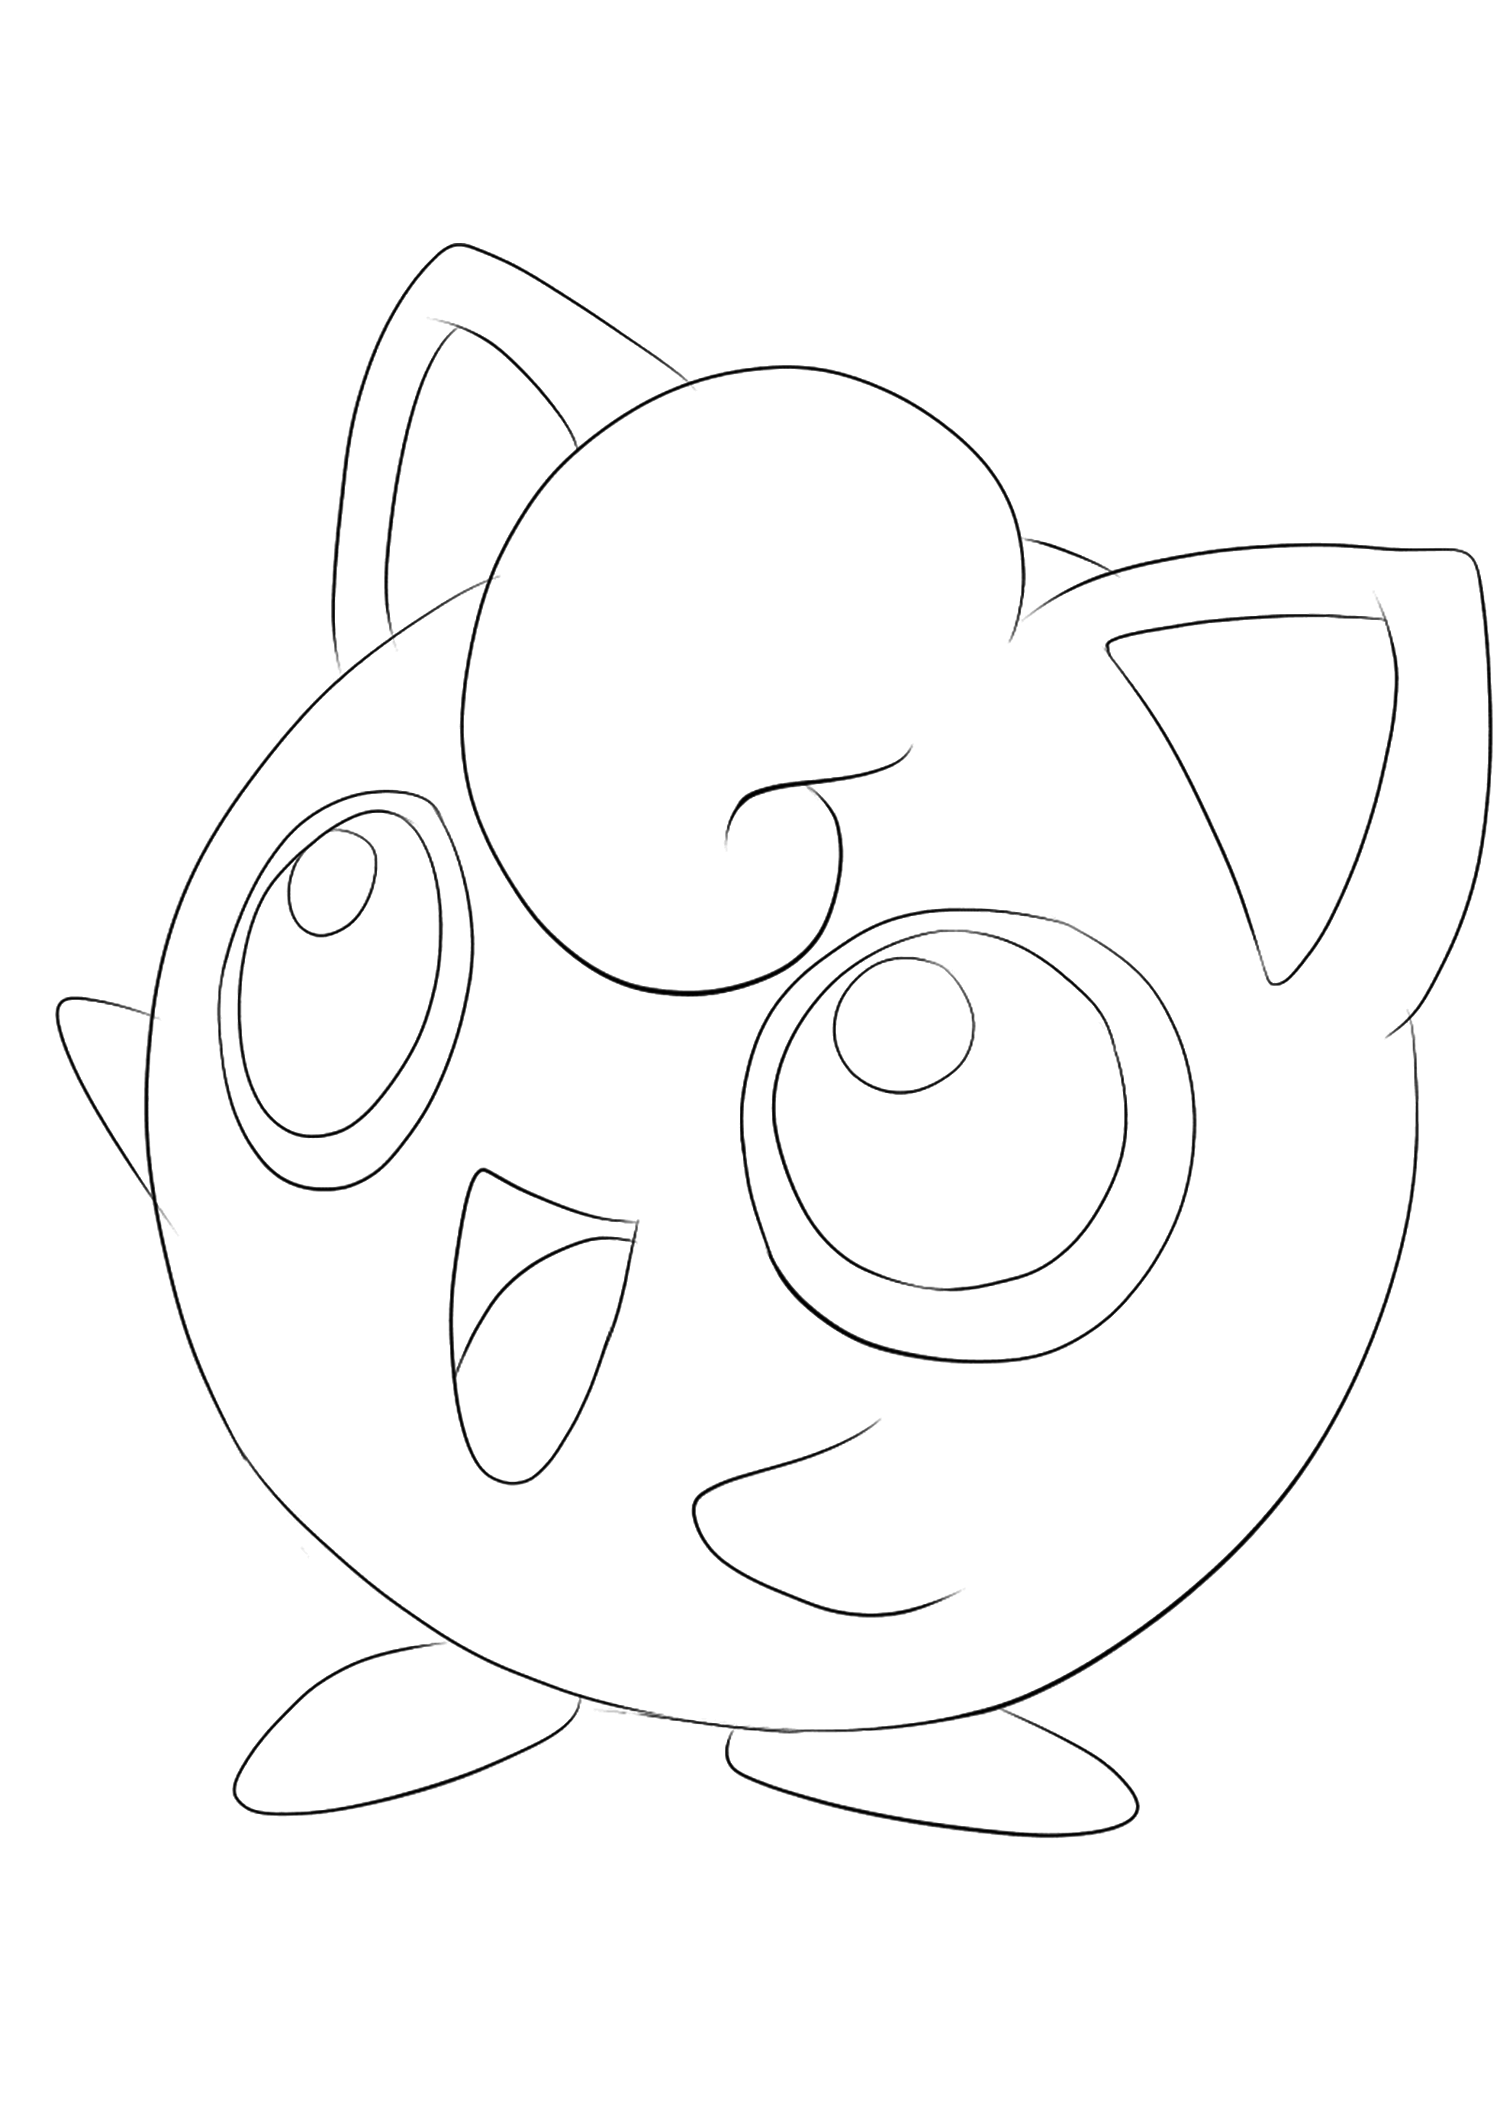 jigglypuff coloring pages jigglypuff funny jozztweet pages coloring jigglypuff